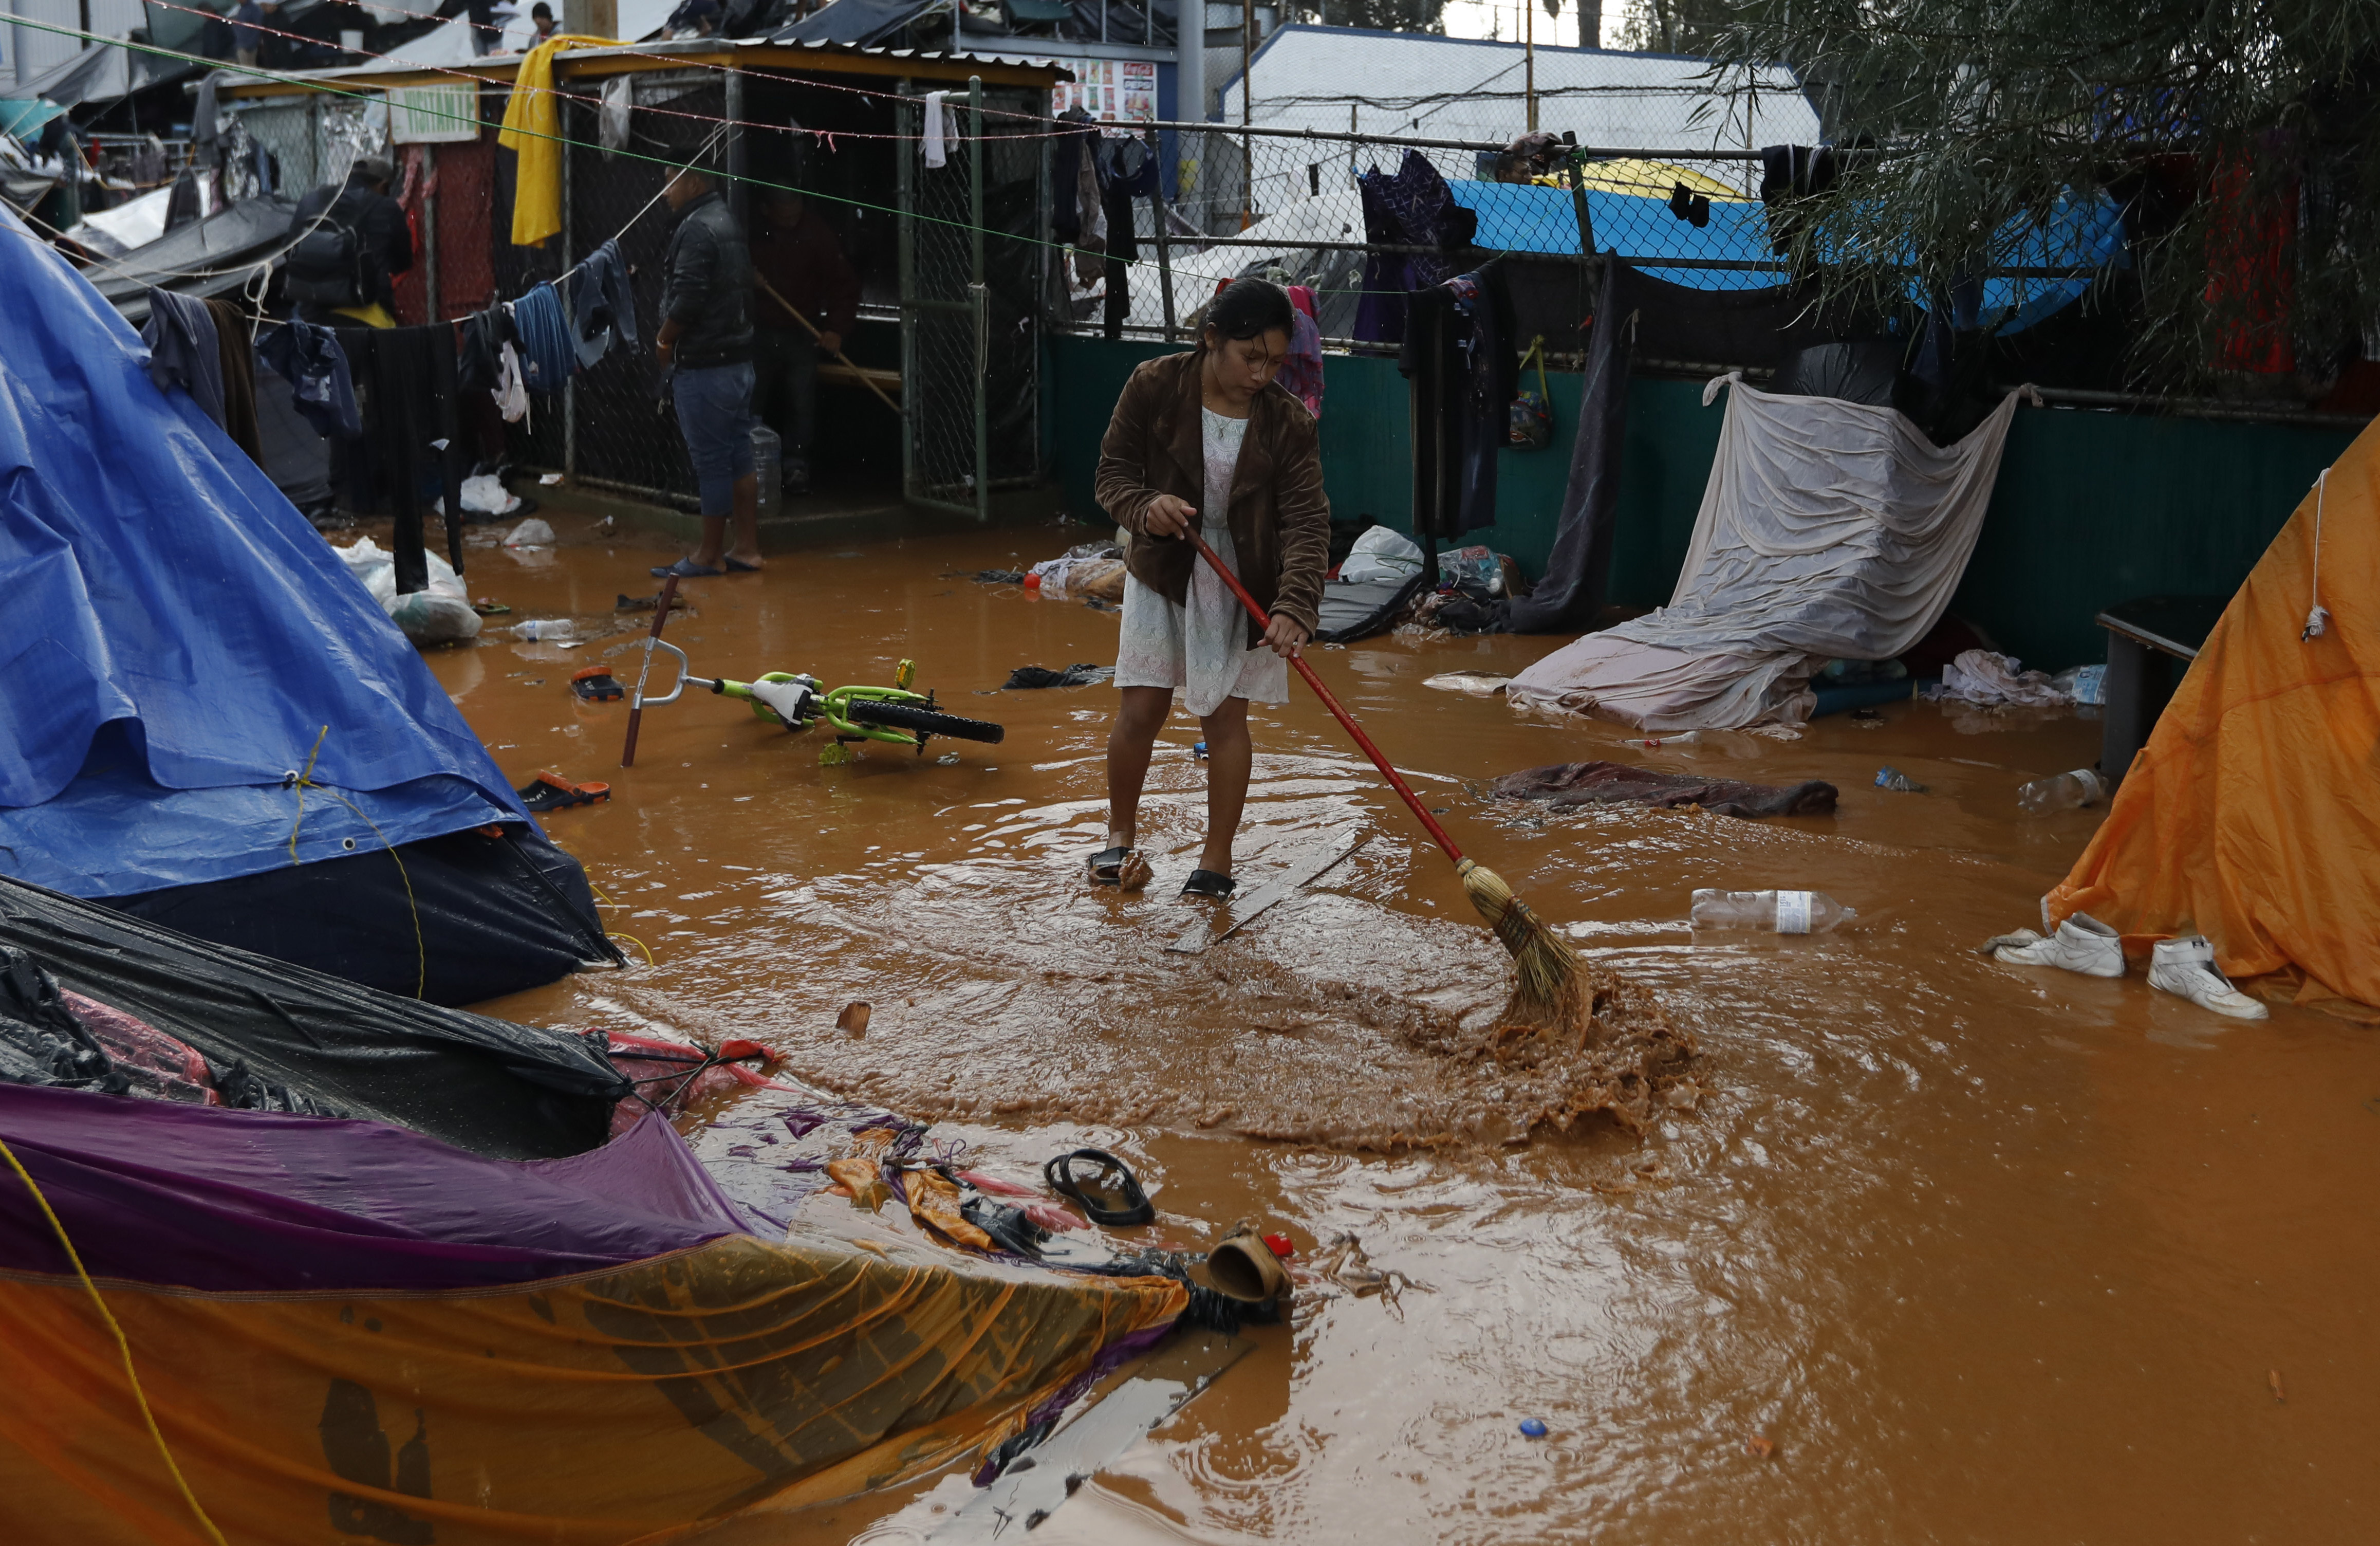 A woman attempts to sweep away flood waters, between bouts of heavy rain at a sports complex sheltering thousands of Central Americans in Tijuana, Mexico, Thursday, Nov. 29, 2018. Aid workers and humanitarian organizations expressed concerns Thursday about the unsanitary conditions at the sports complex in Tijuana where more than 6,000 Central American migrants are packed into a space adequate for half that many people and where lice infestations and respiratory infections are rampant.(AP Photo/Rebecca Blackwell)